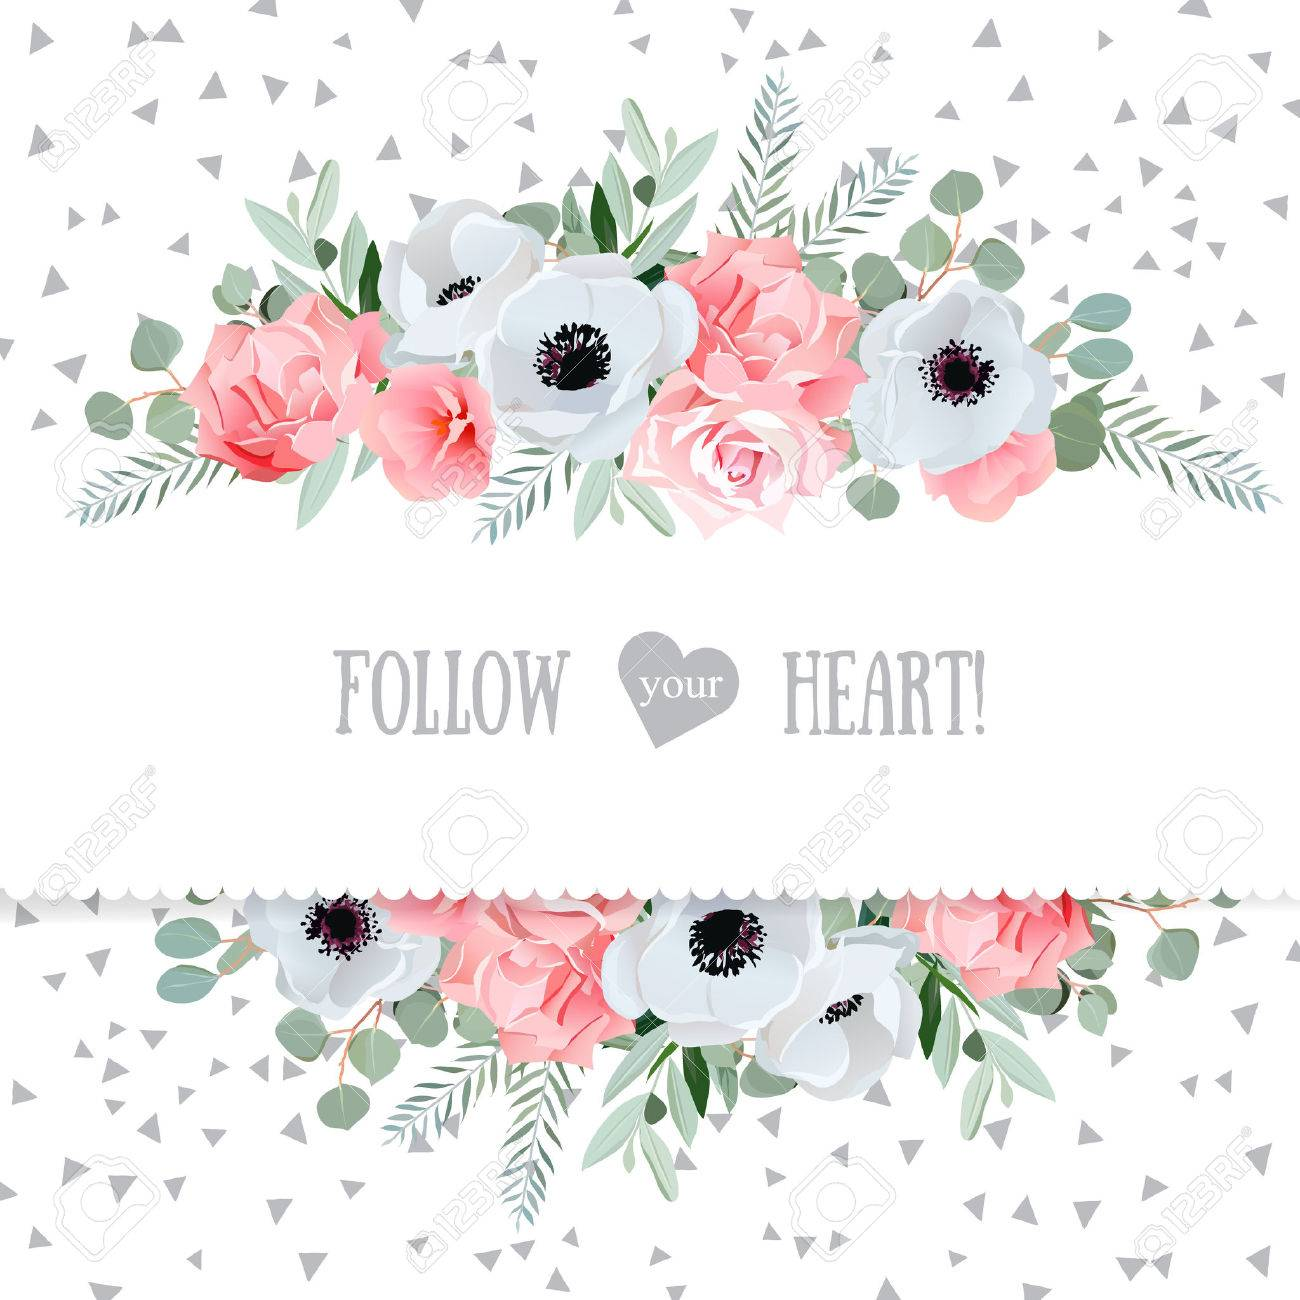 Anemone rose pink flowers and decorative eucaliptus leaves anemone rose pink flowers and decorative eucaliptus leaves mirrored design card speckled triangle mightylinksfo